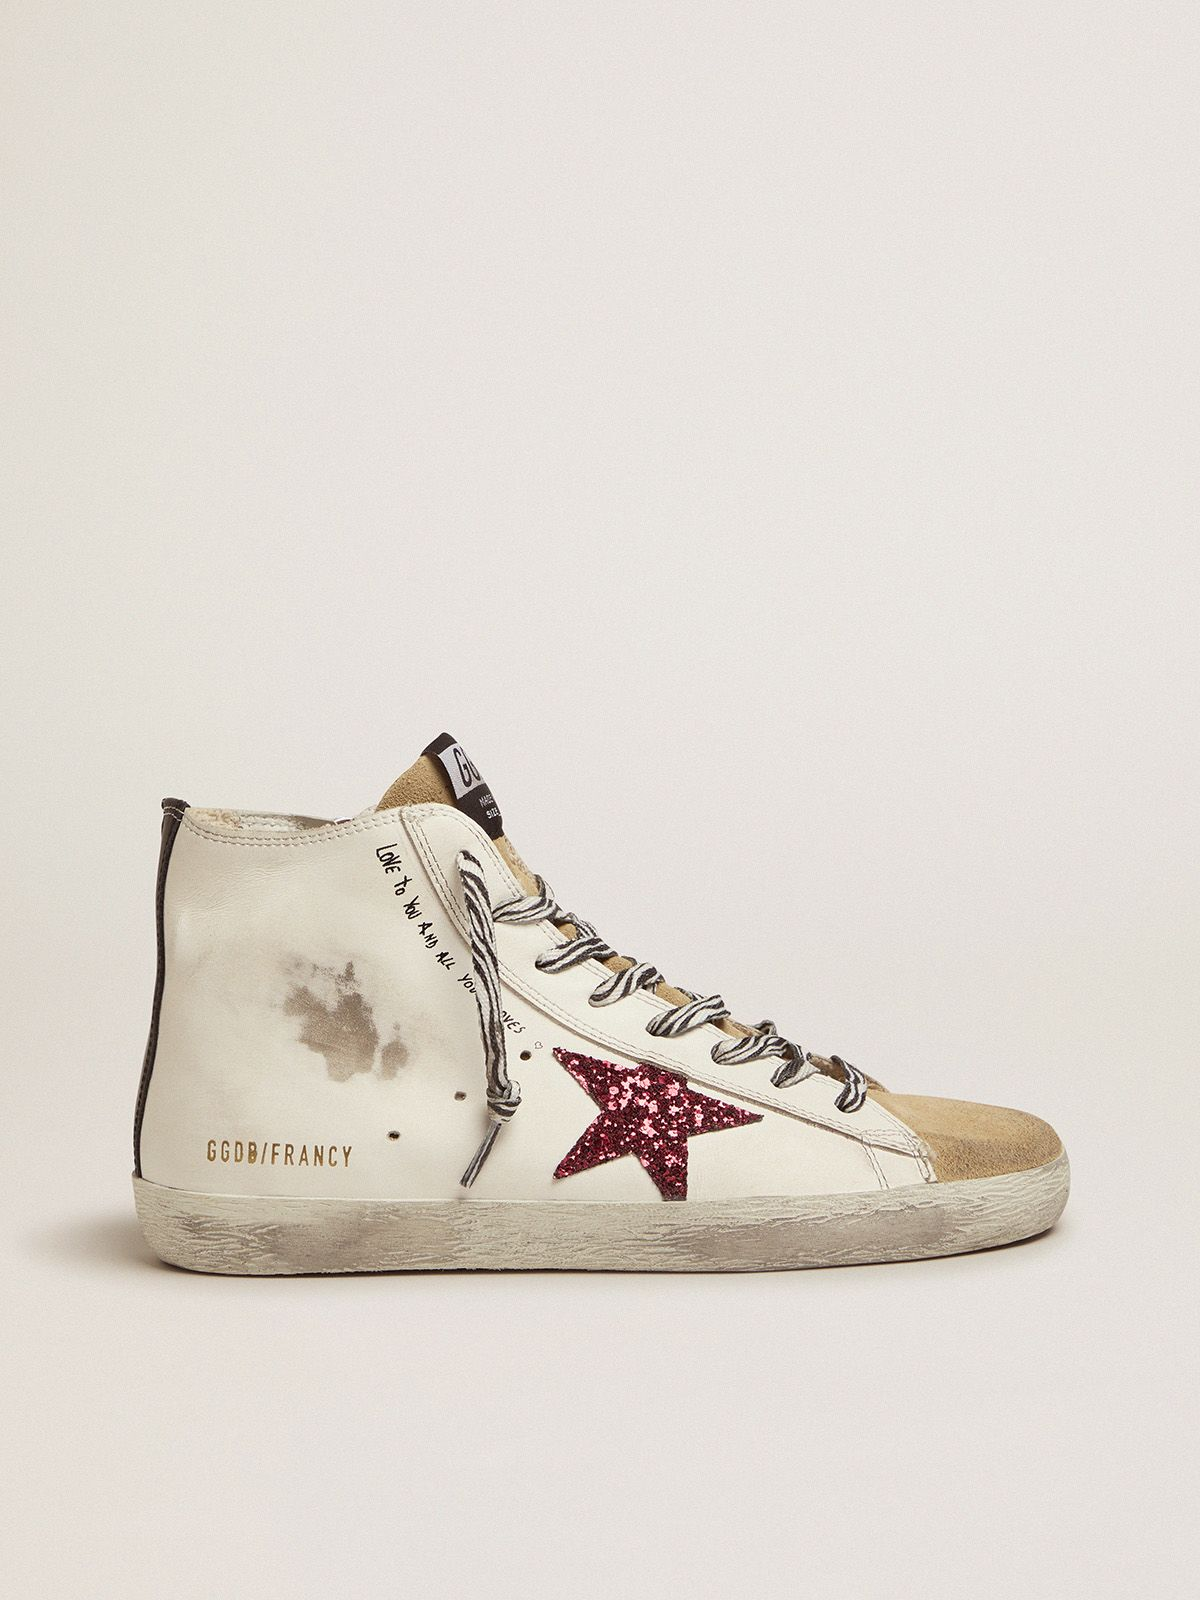 Francy sneakers with red glittery star and handwritten lettering